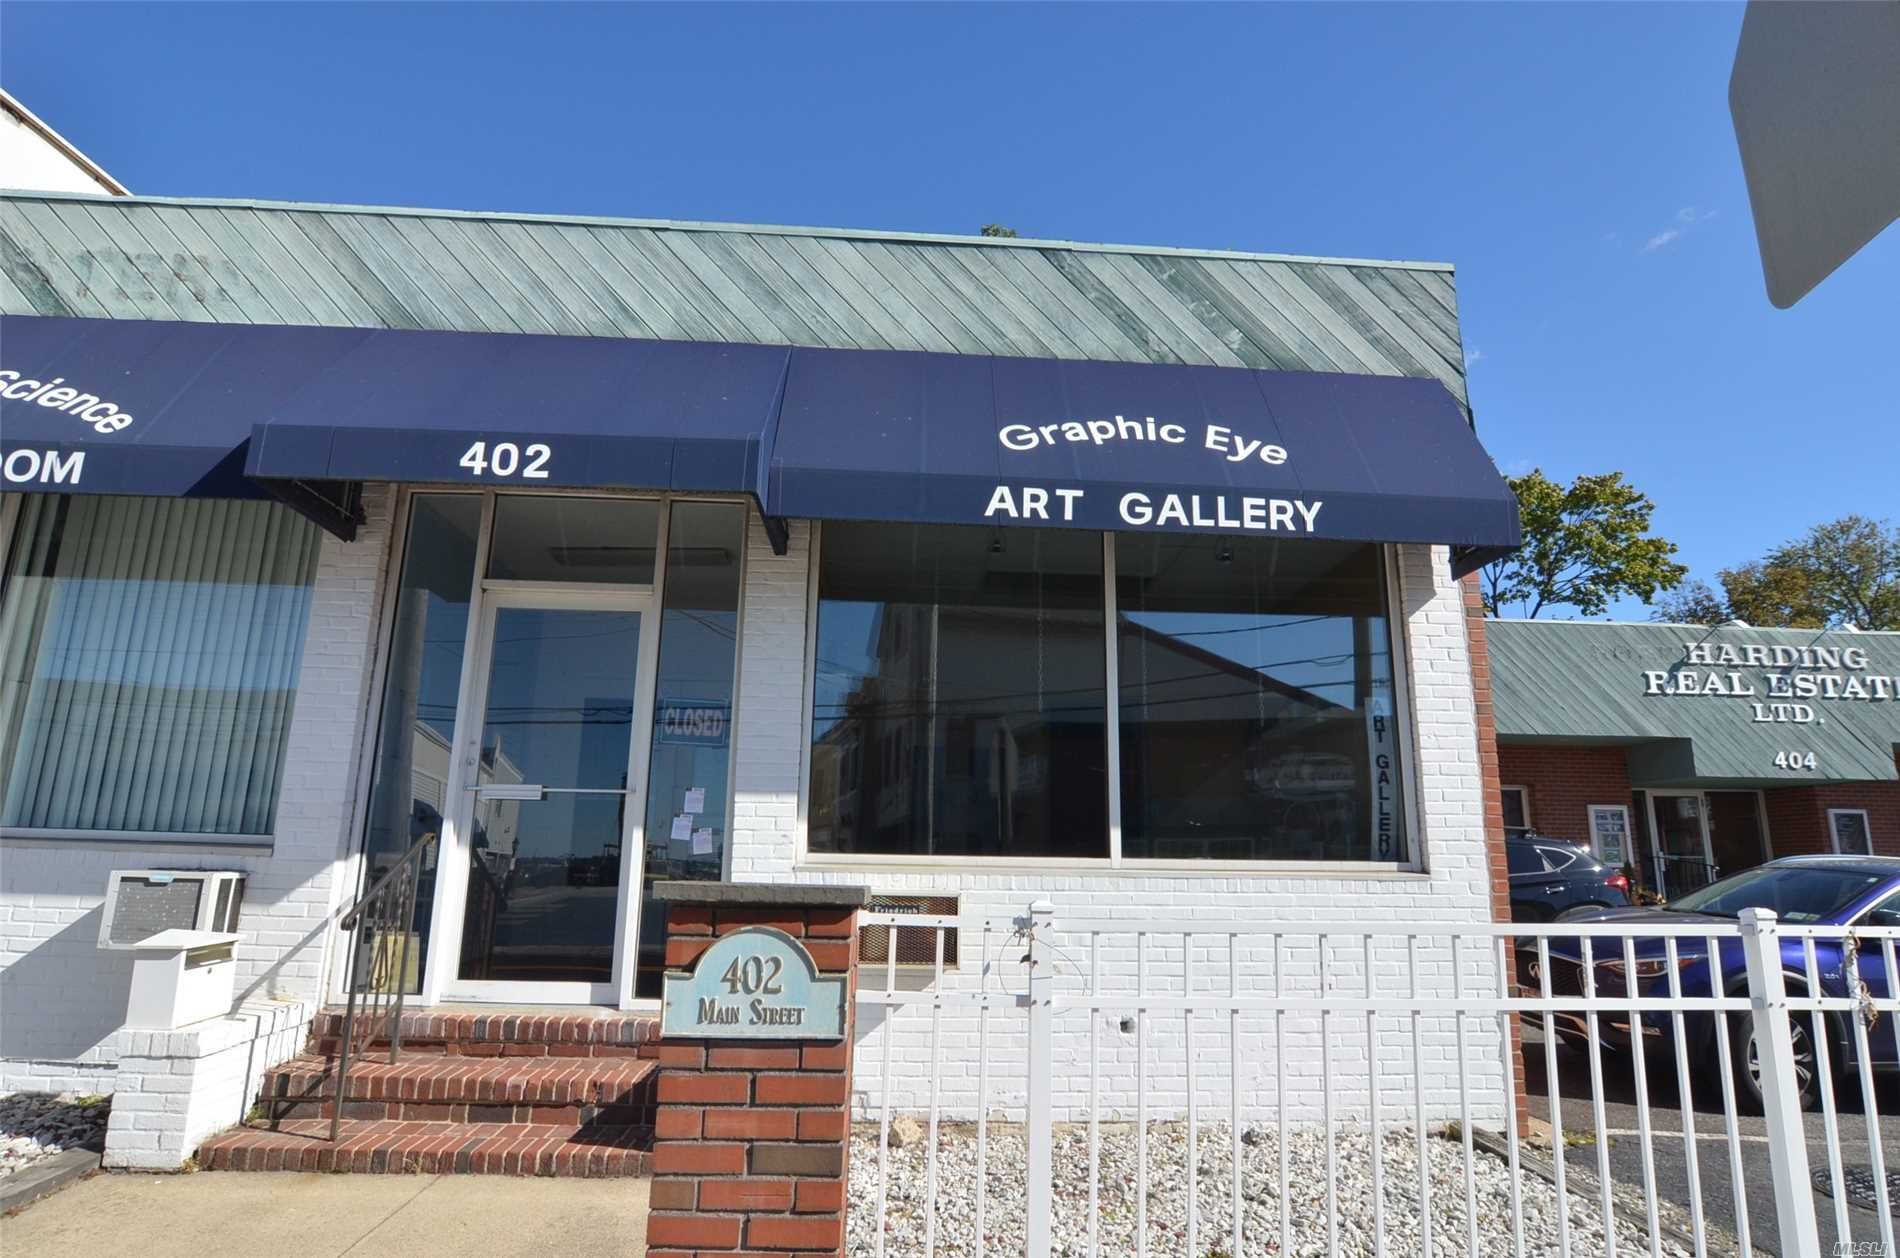 Approximately 1300 Sq Ft Of Office Or Store Front Space Directly Across From Inspiration Wharf In Downtown Port Washington. Was Being Used As An Art Gallery/Studio. Space Currently Has Open Floor Plan Plus Conference Room, Storage And Powder Room. Parking For 2-3 Cars During Day And More At Night. Tenant Pays For Heat And Electric.